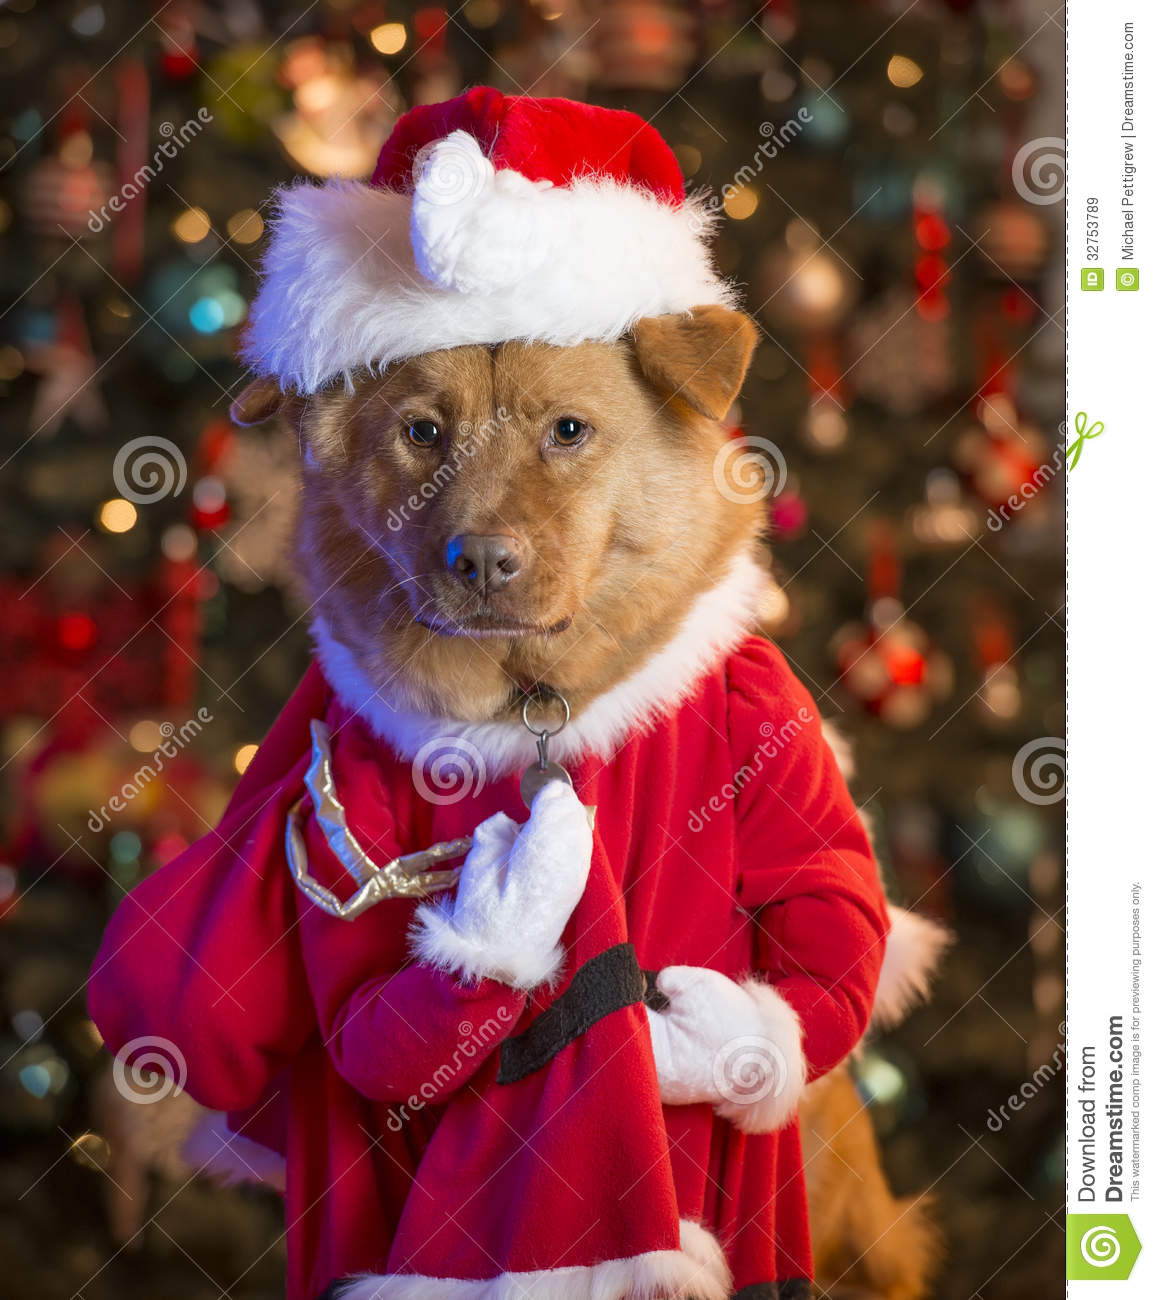 Dog Dressed Up As Santa Claus Stock Image Image Of